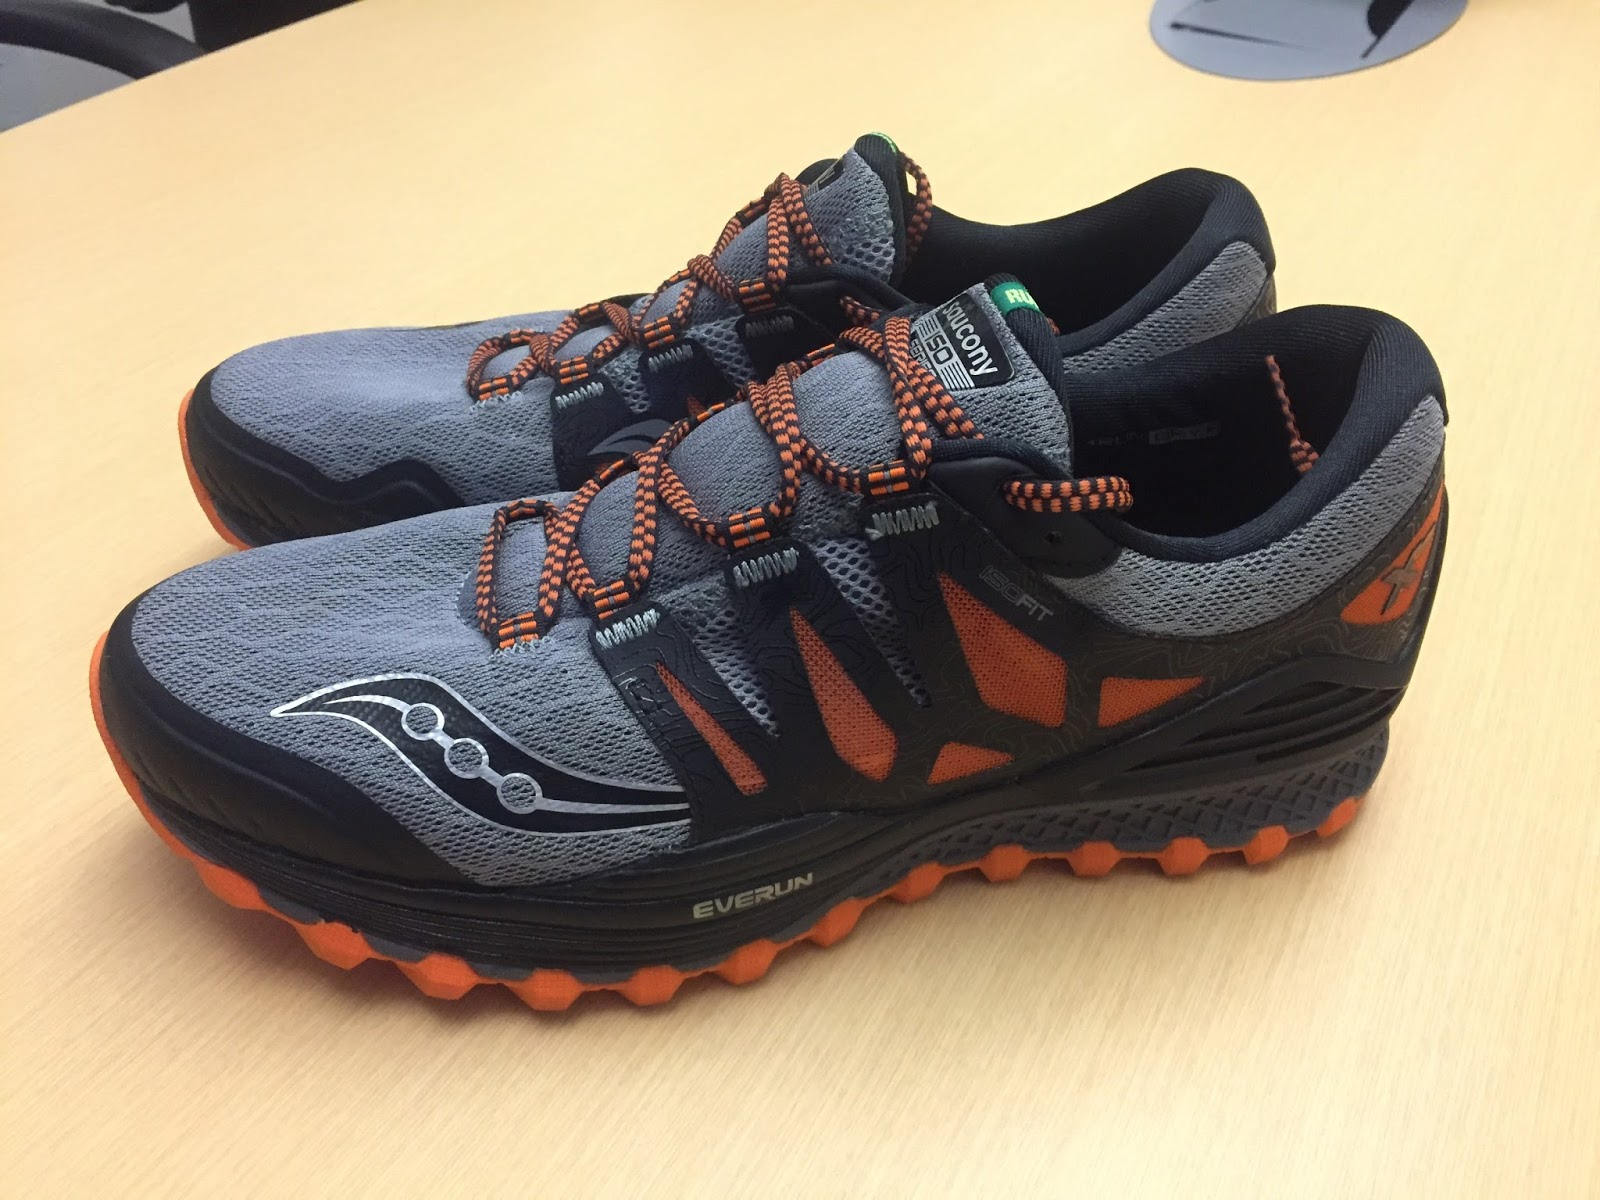 586c665b2431 Saucony Xodus ISO Review  Maximal Cushion And Comfort For The Long Haul